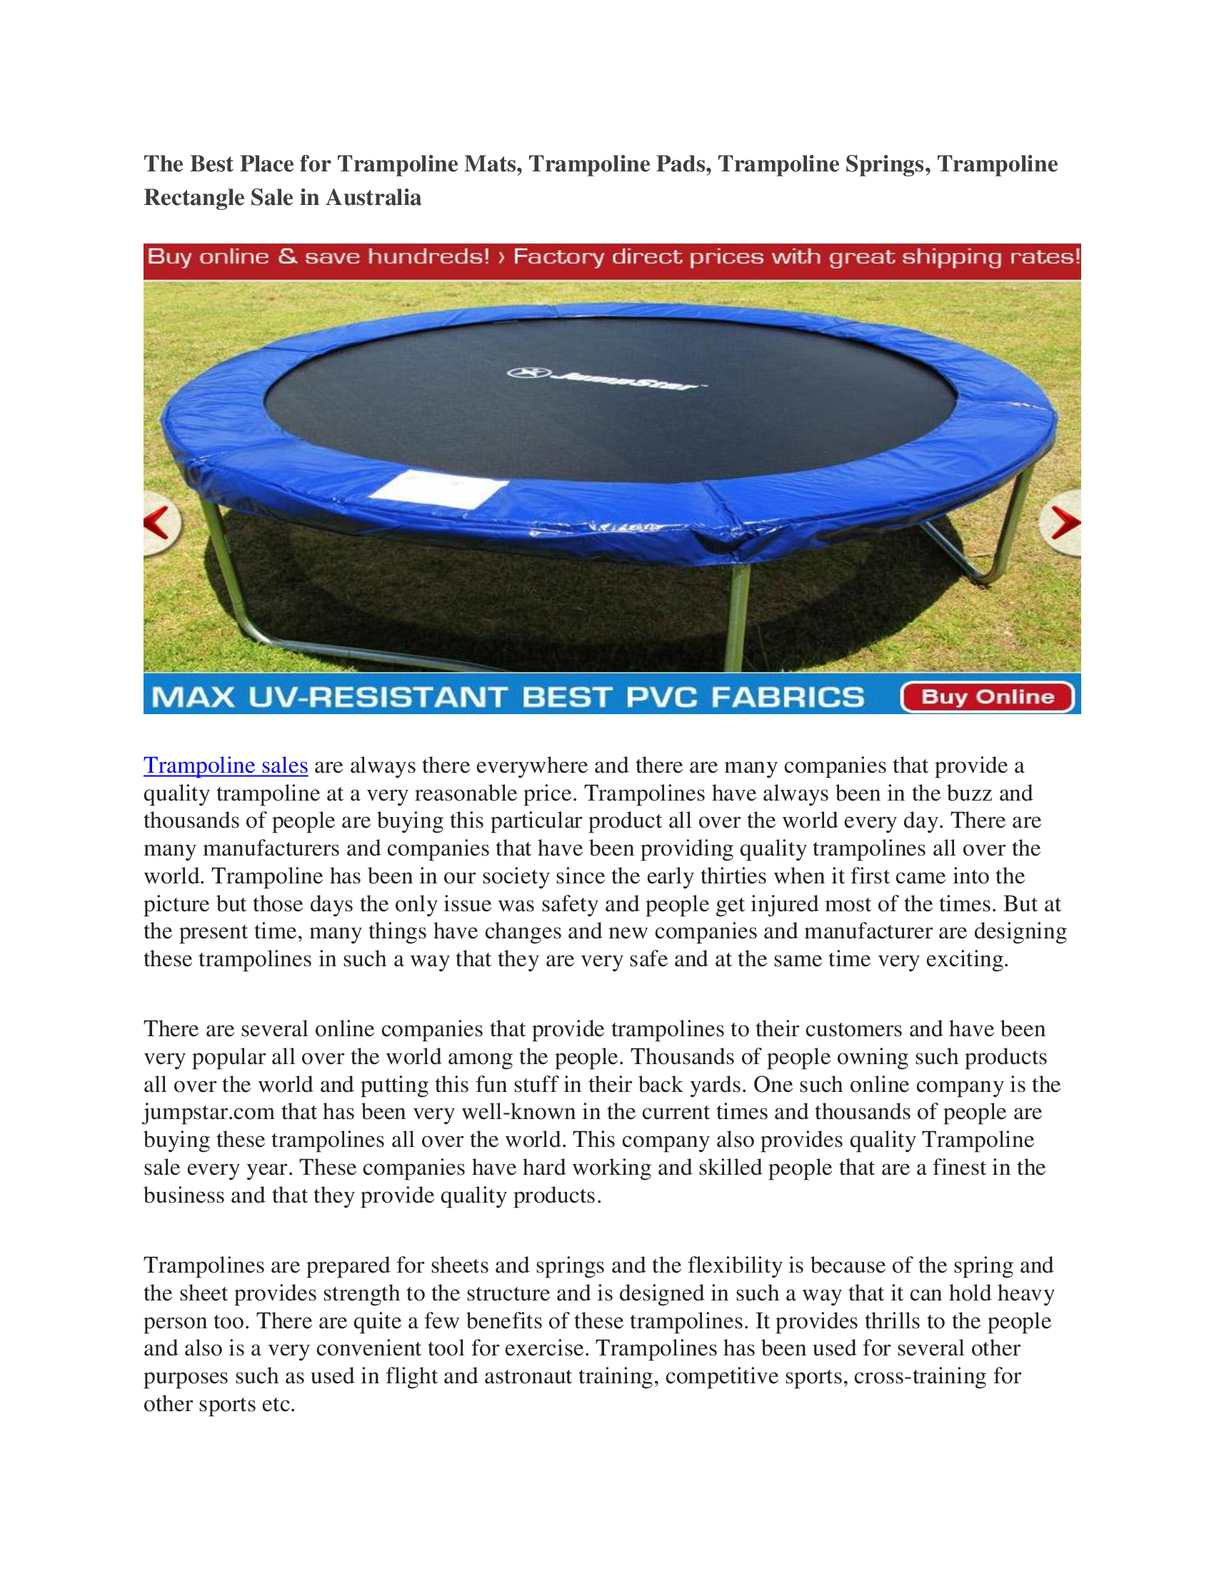 Trampoline Sale Australia Calaméo The Best Place For Trampoline Mats Trampoline